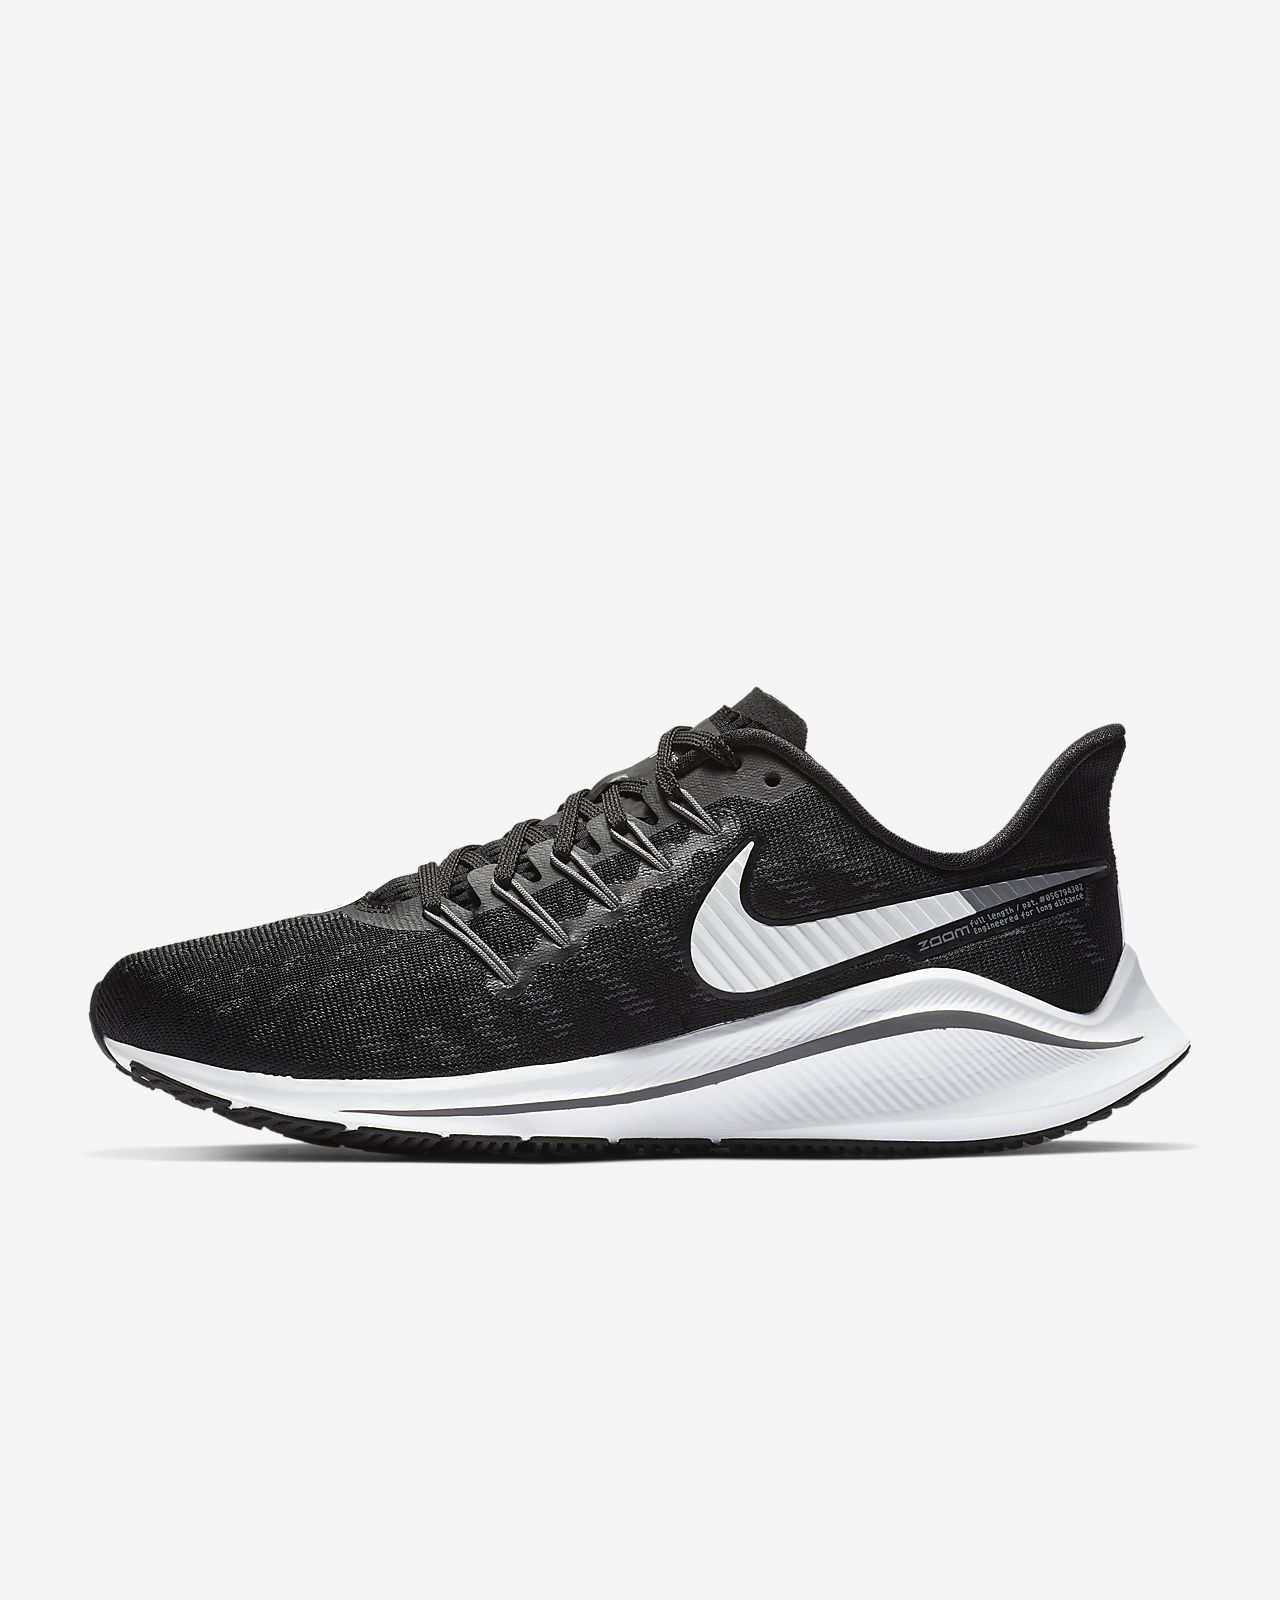 f9601bf3290a5 Low Resolution Nike Air Zoom Vomero 14 Women s Running Shoe Nike Air Zoom  Vomero 14 Women s Running Shoe